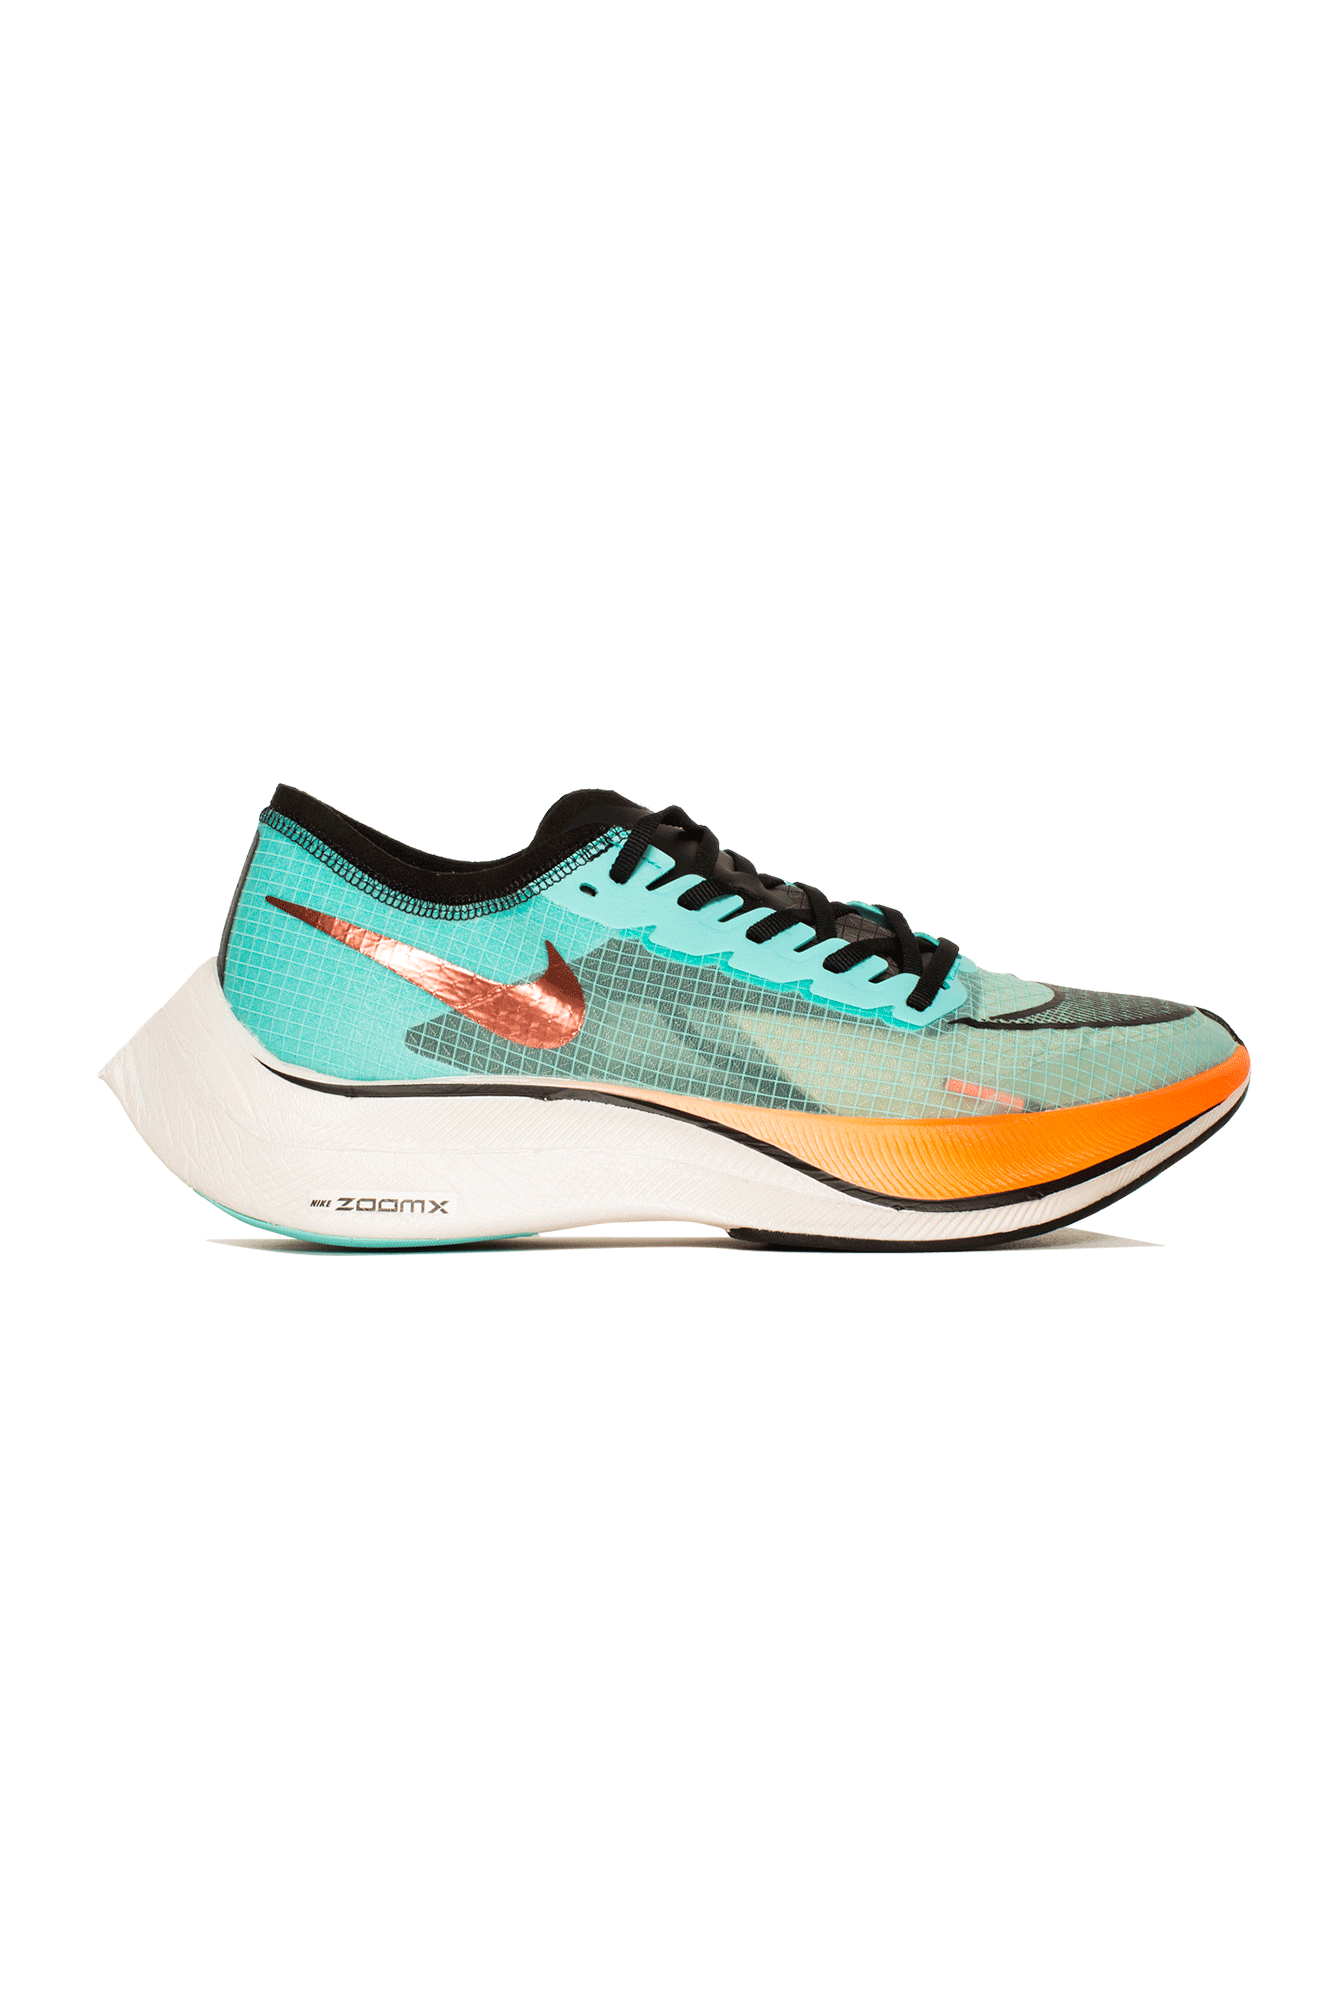 Nike Sneakers Zoomx Vaporfly Next% Hkne Blue CD4553-#000#300#7 - One Block Down